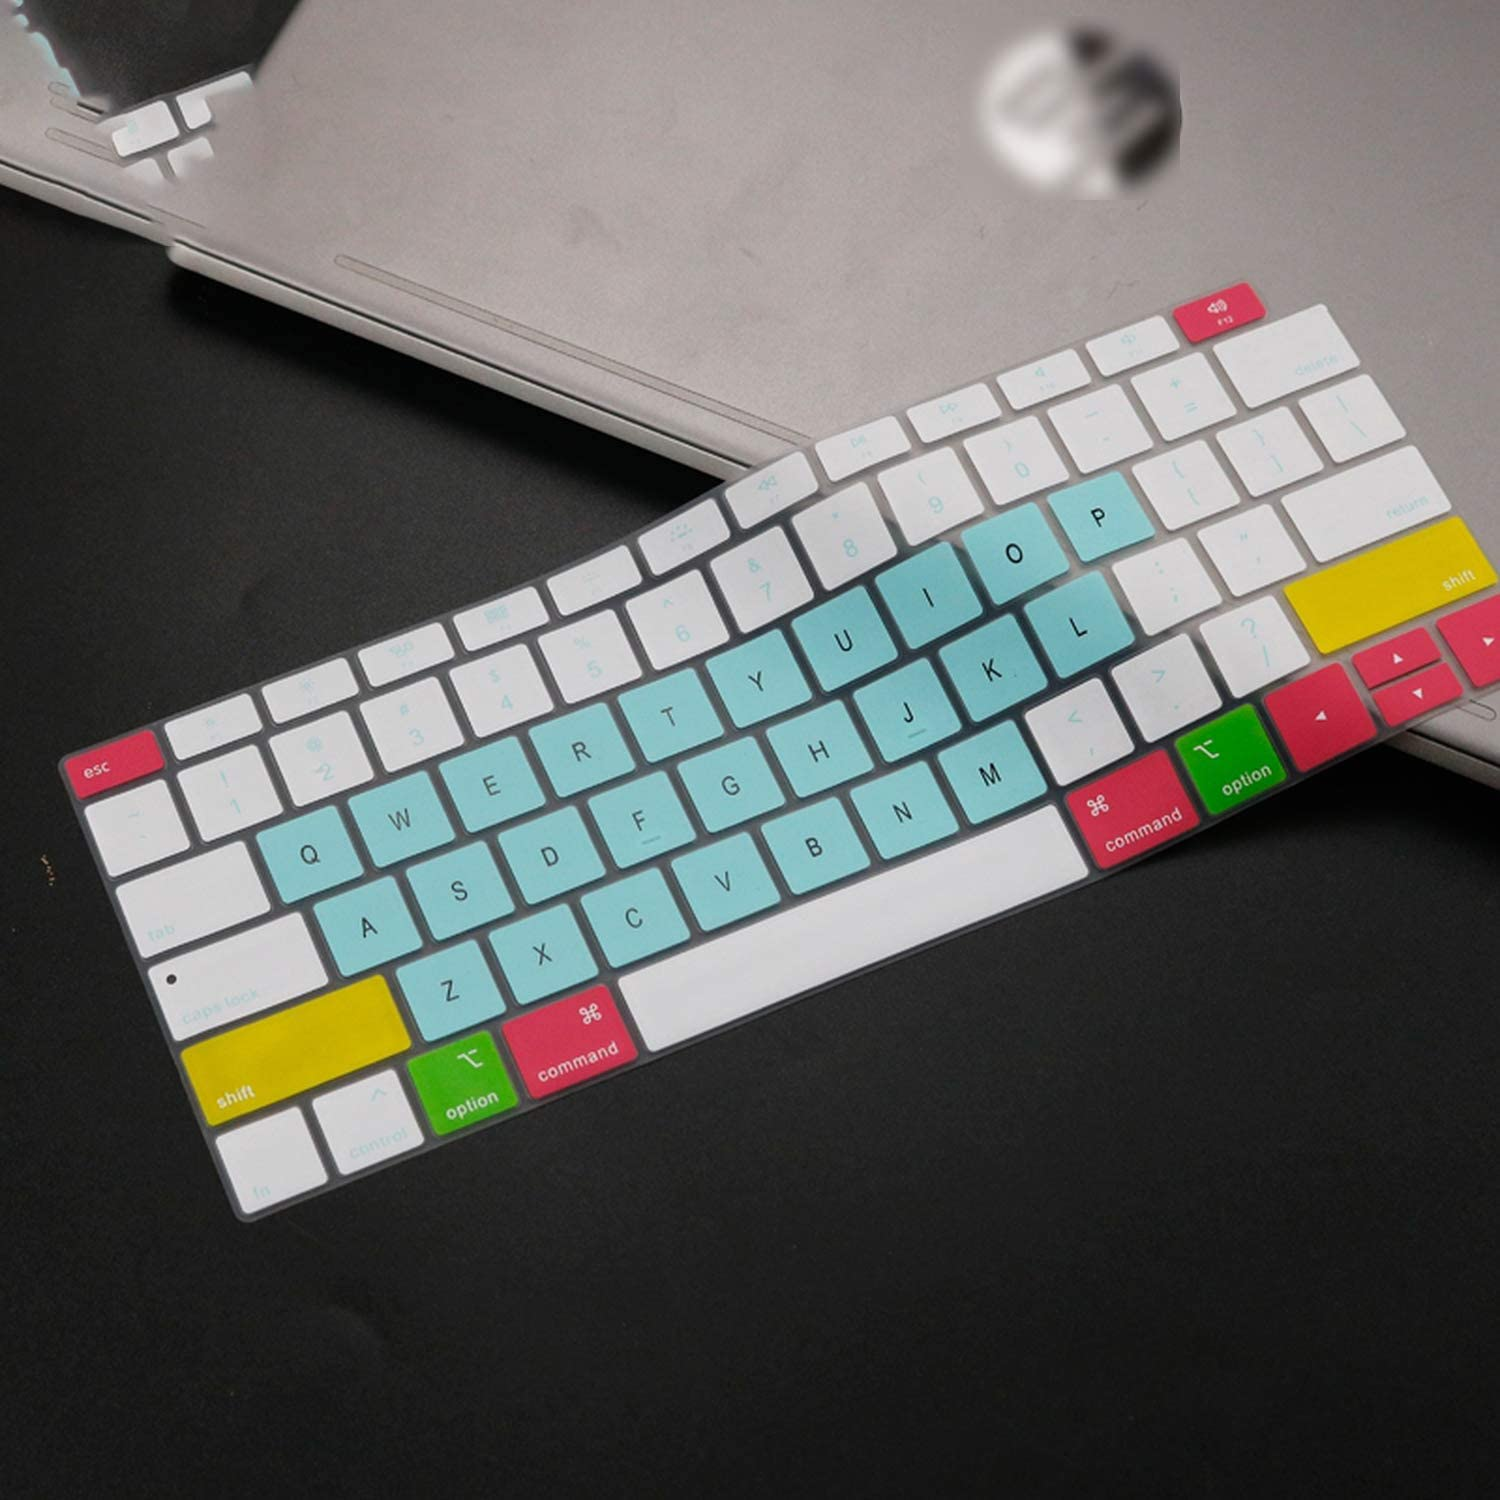 2020 Silicone Keyboard Cover for MacBook Air 13 Inch 2019 2018 Release A1932 Touch Id Waterproof Dust Proof Protective Skin-Whiteblue